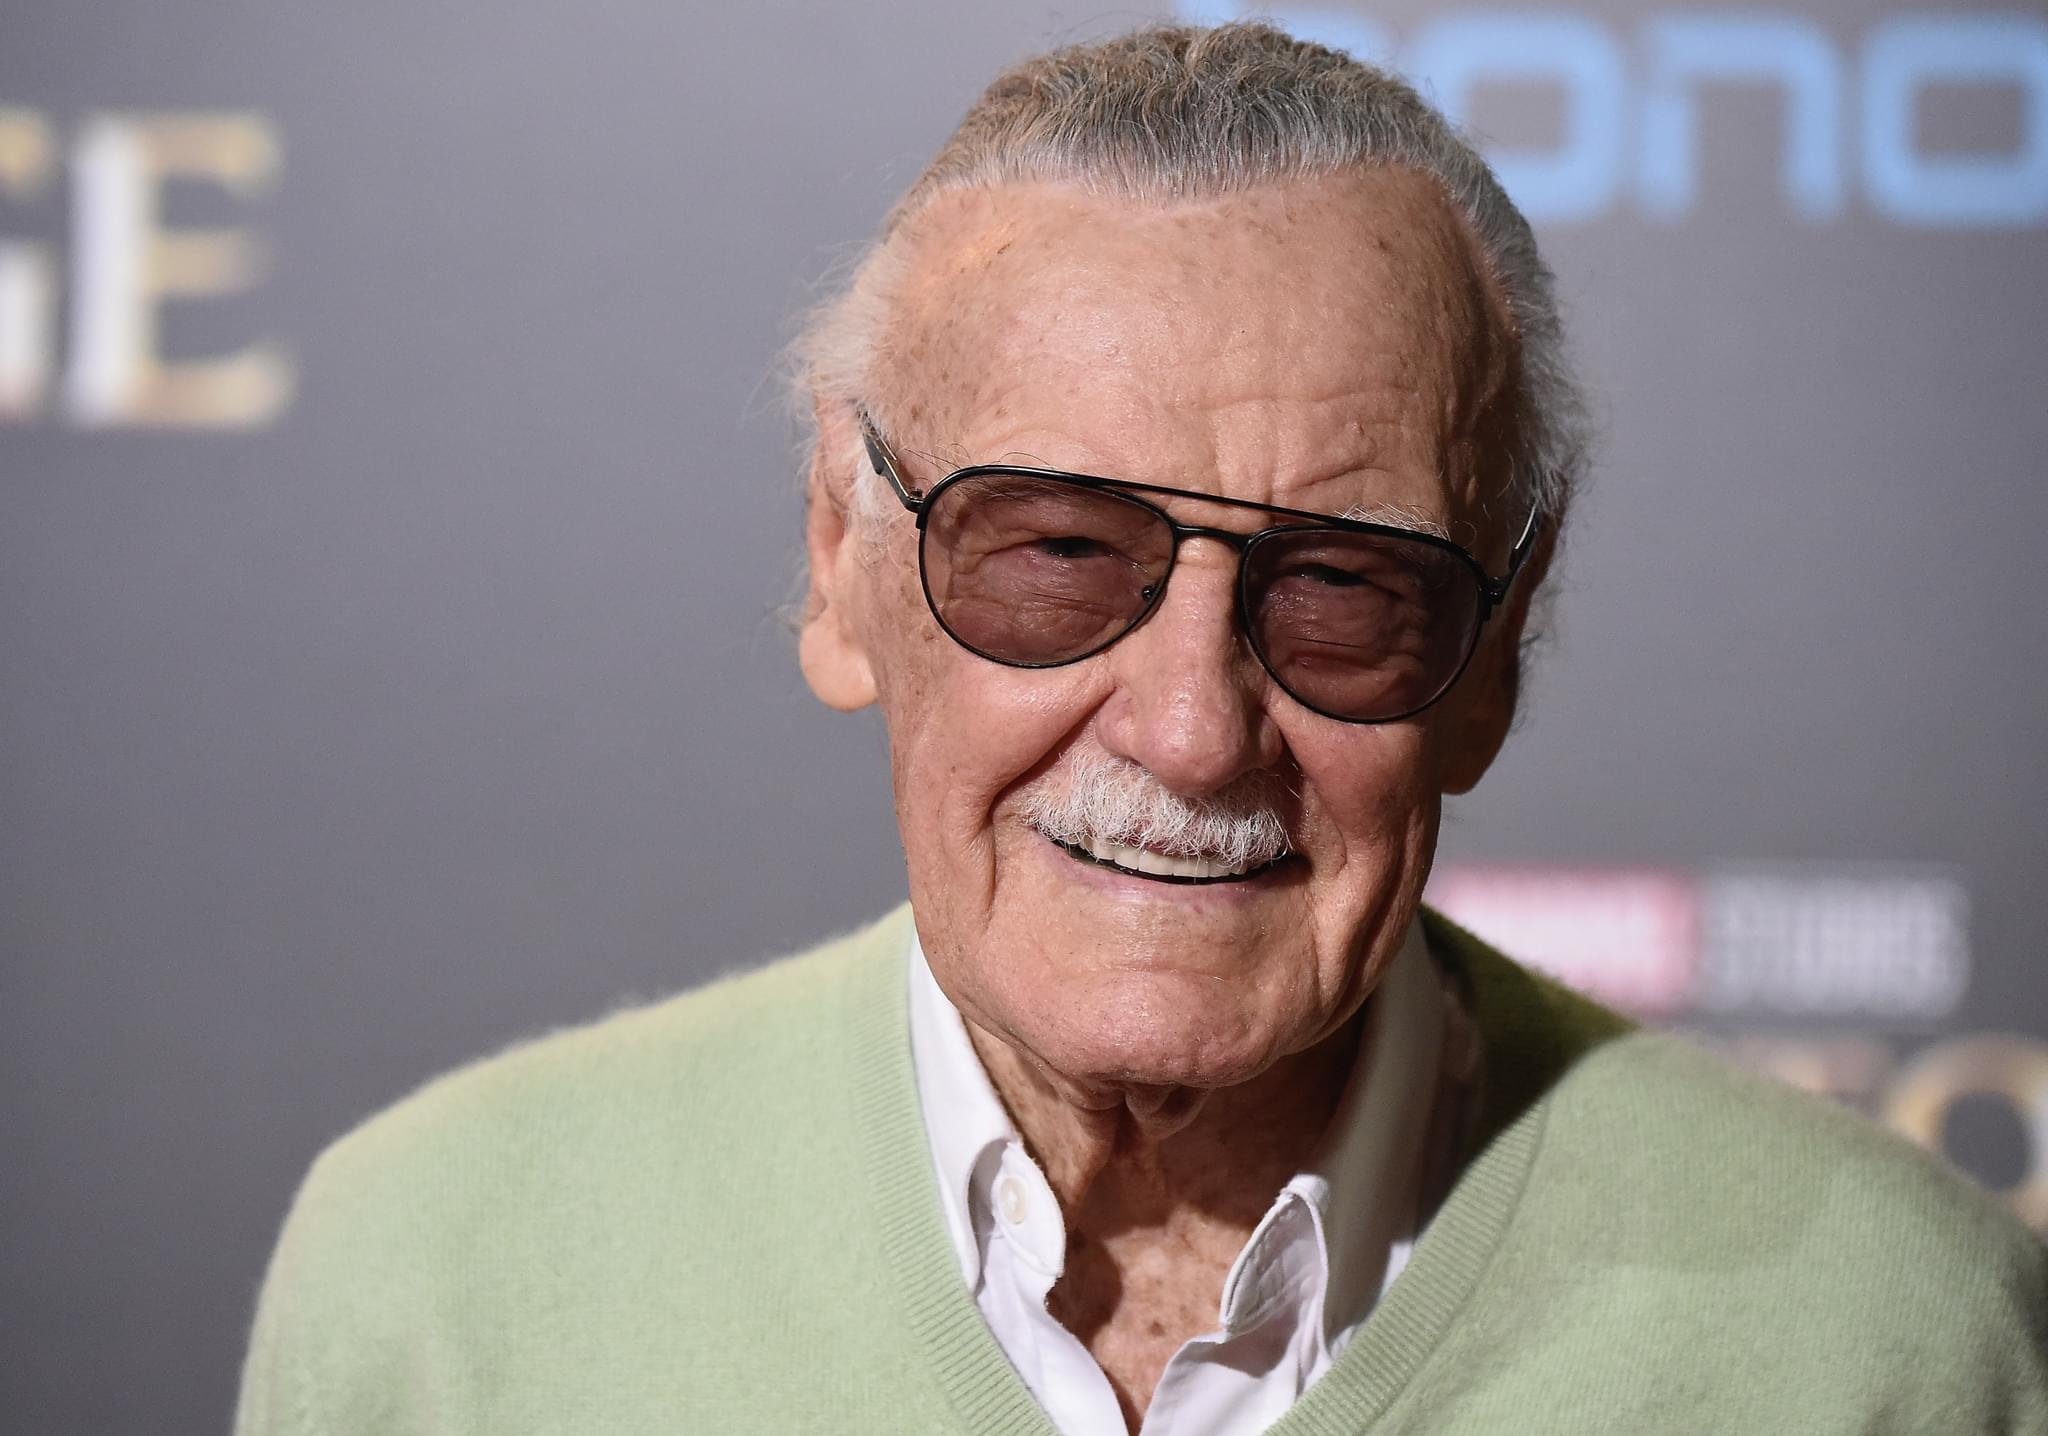 Remembering Stan Lee [PODCAST]